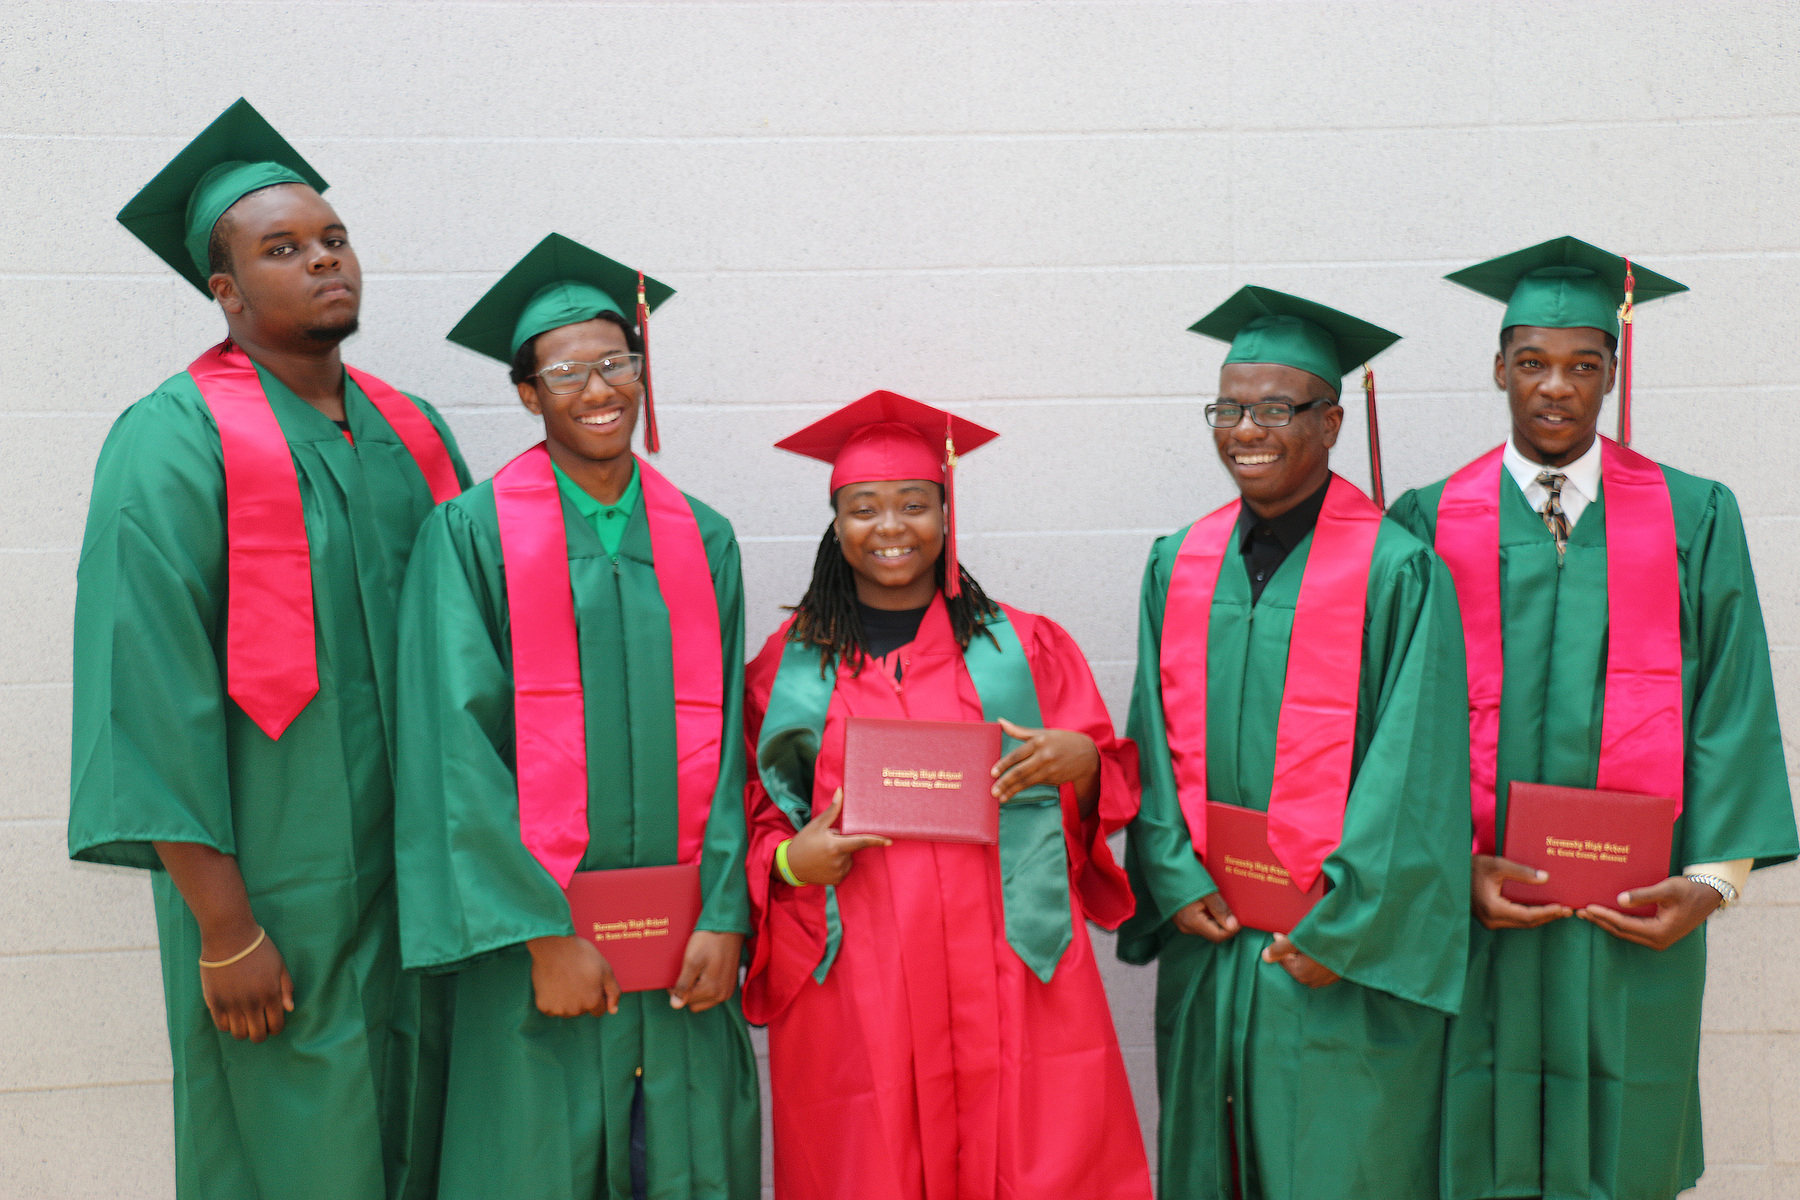 2014_nhs_summer_graduates-sharpened-1800-1200-04bba0